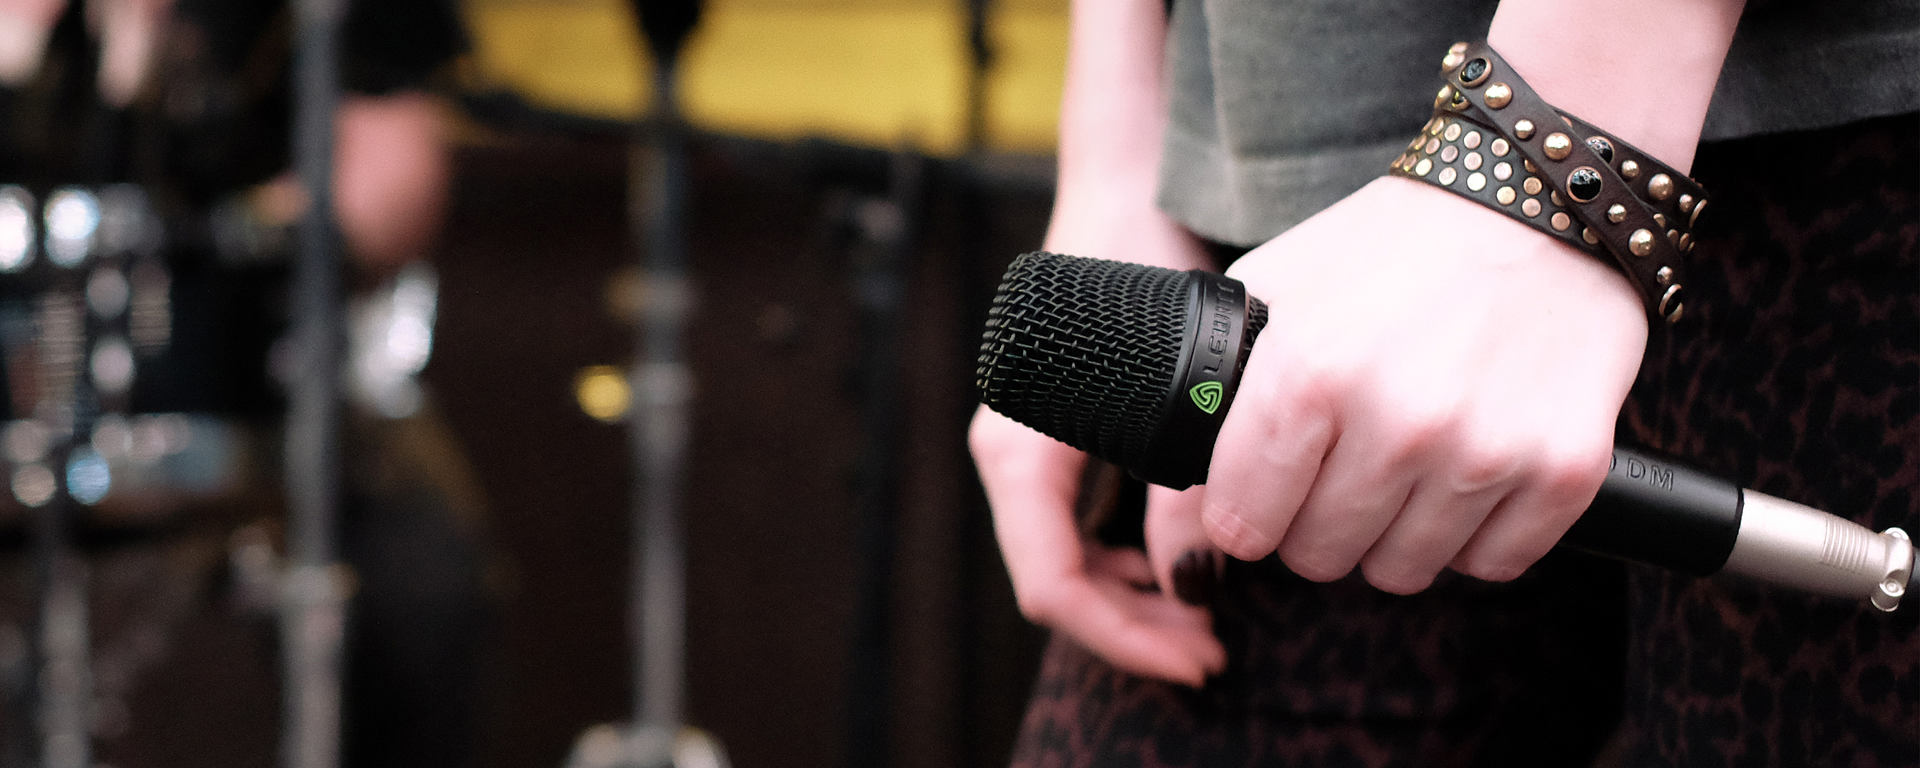 A woman's hand holding an MTP 940 microphone on stage